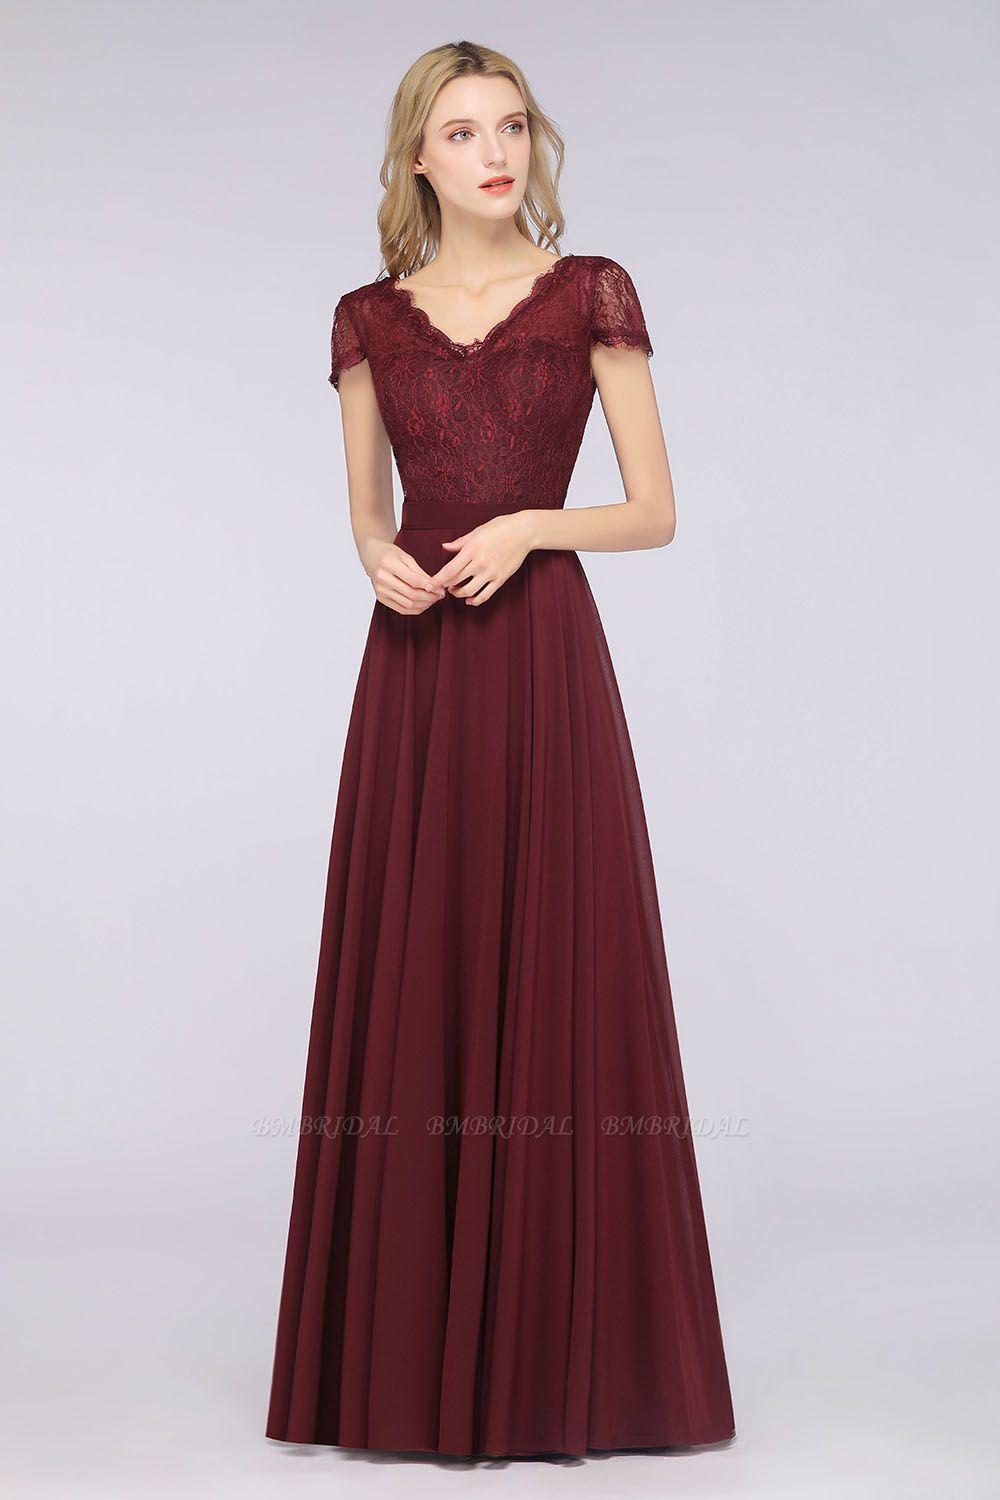 Elegant Lace V-Neck Burgundy Bridesmaid Dress with Cap Sleeves